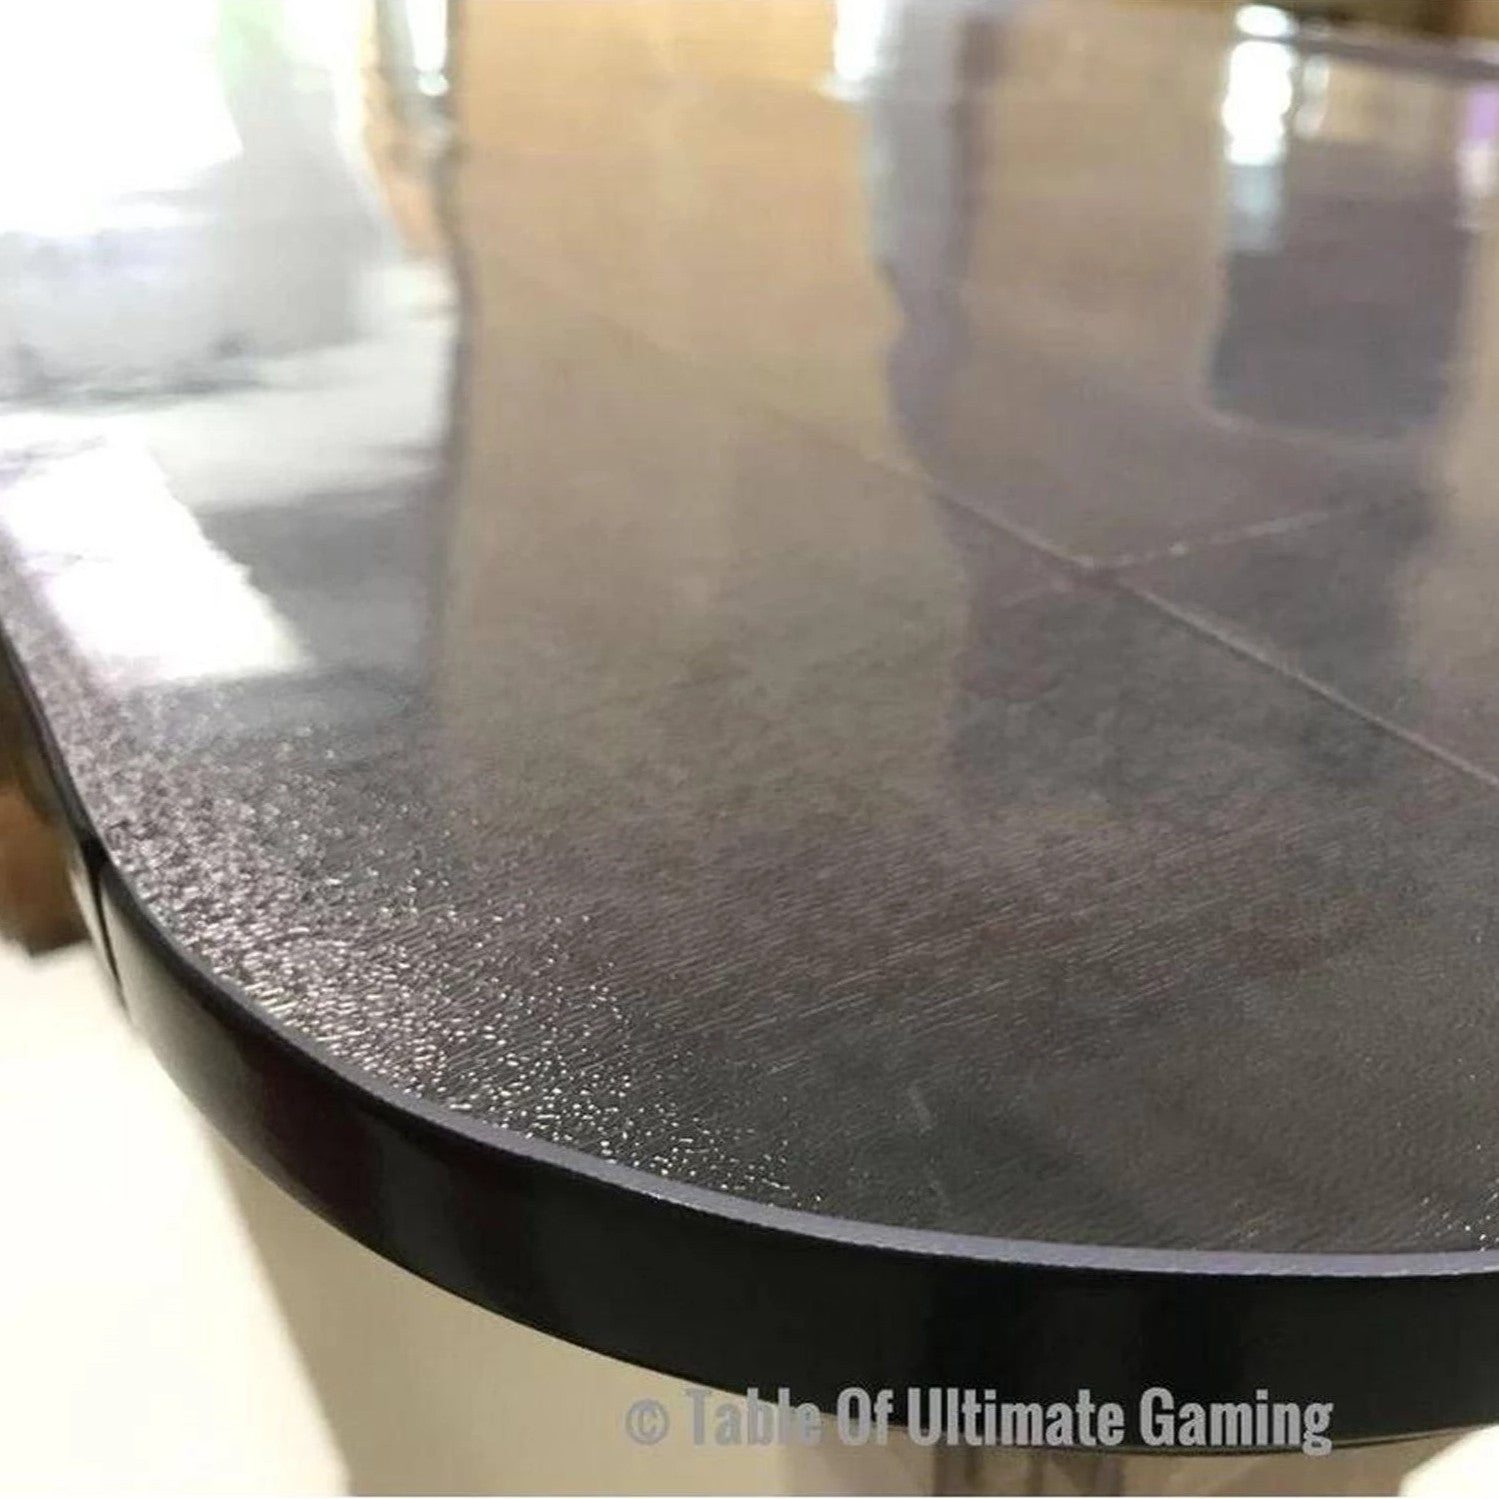 225 & Clear Protective Top Mat - fits Elite Series Game of Thrones and Warhammer Special Edition